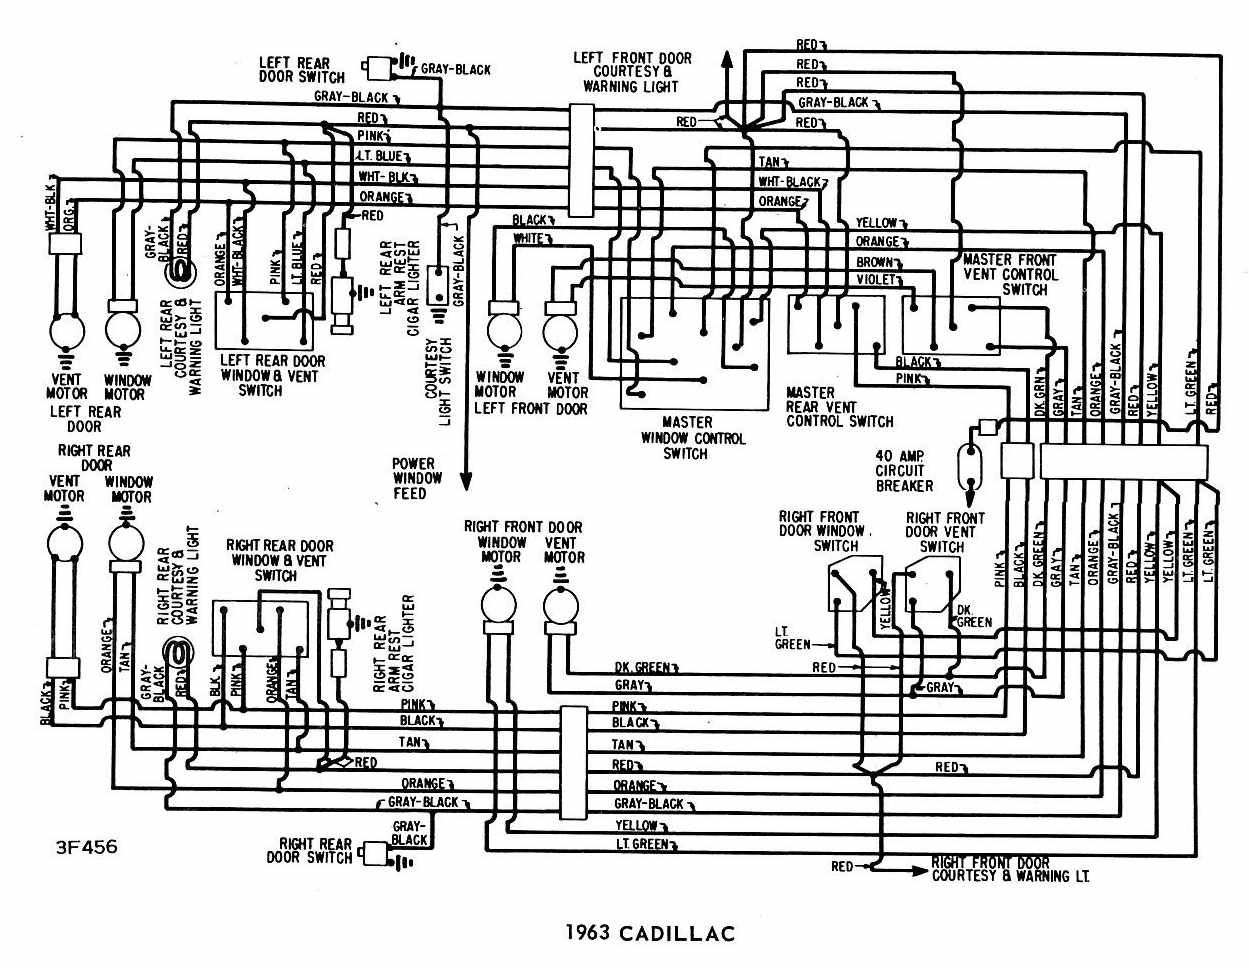 wiring diagram for a 1955 cadillac catalogue of schemas 2000 cadillac deville wiring diagram 55 cadillac wiring wiring diagram